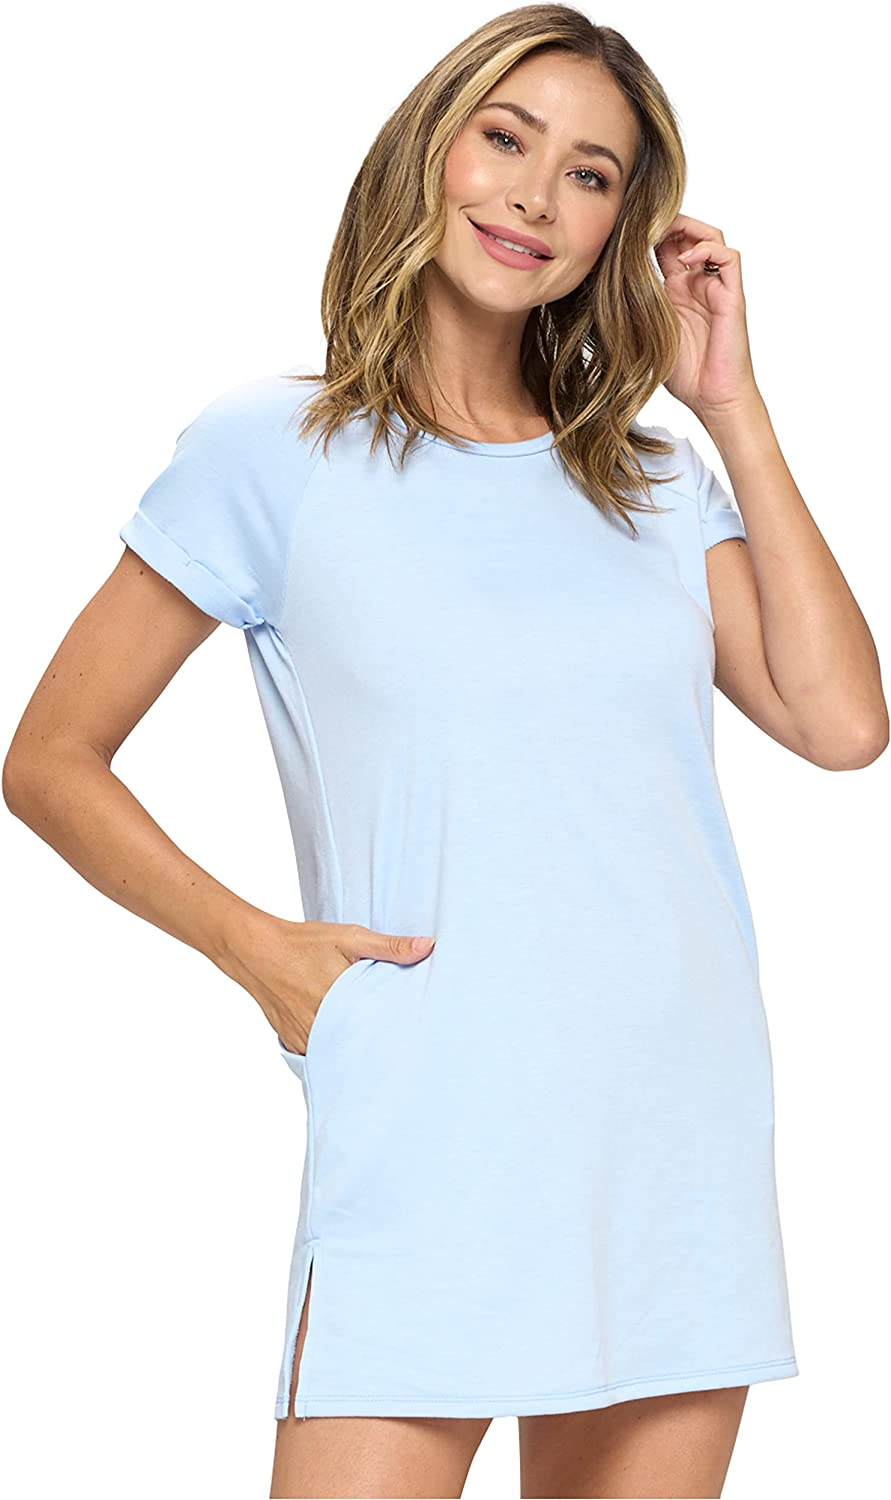 EVCR Women's Casual Coverup T-Shirt Dress with Pockets